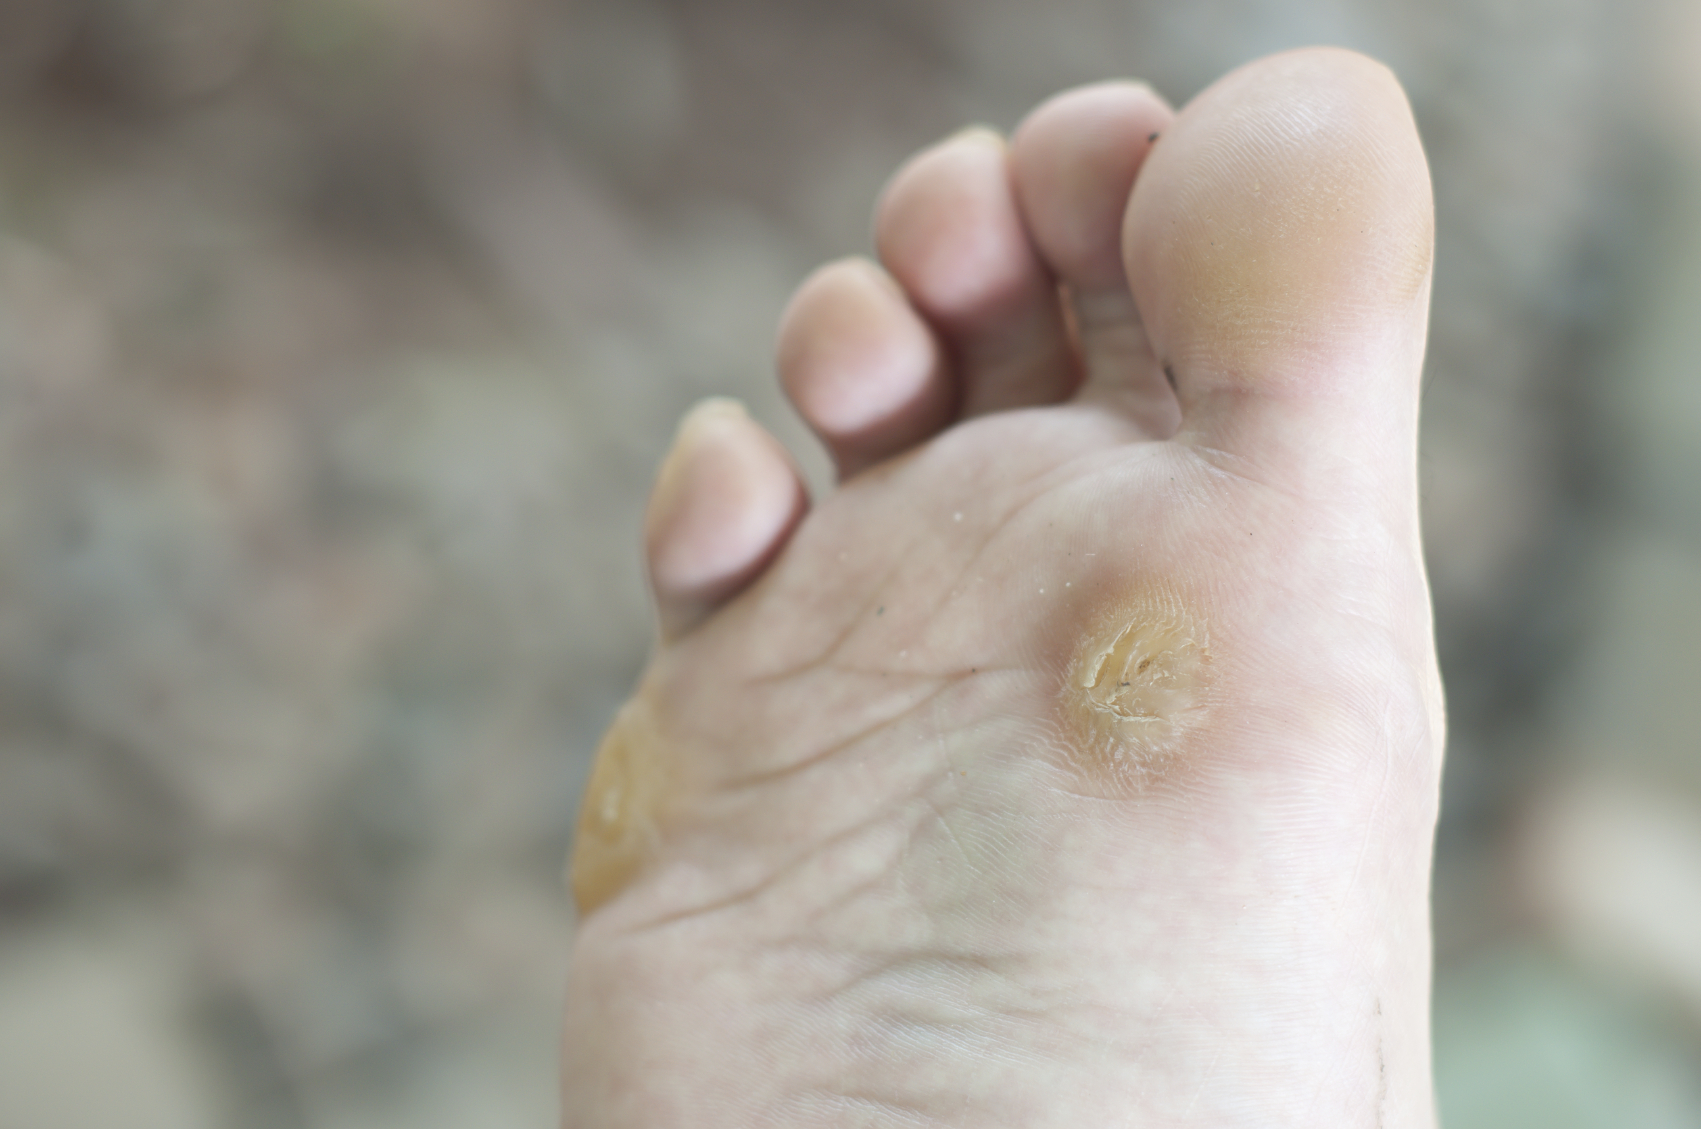 hpv on foot